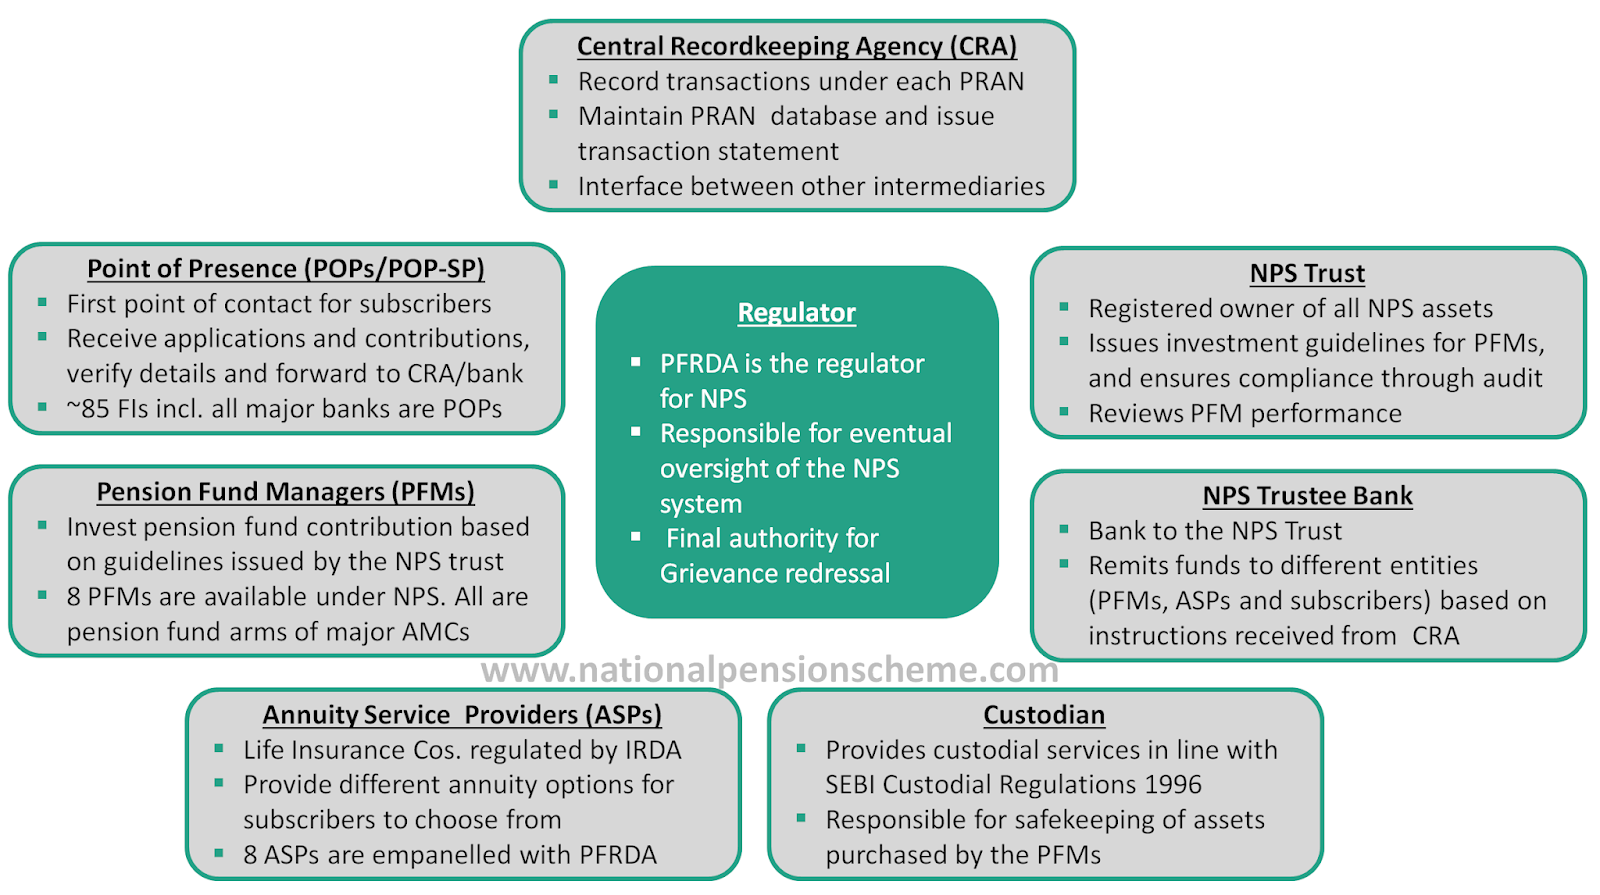 Roles and function of different intermediaries in the NPS system